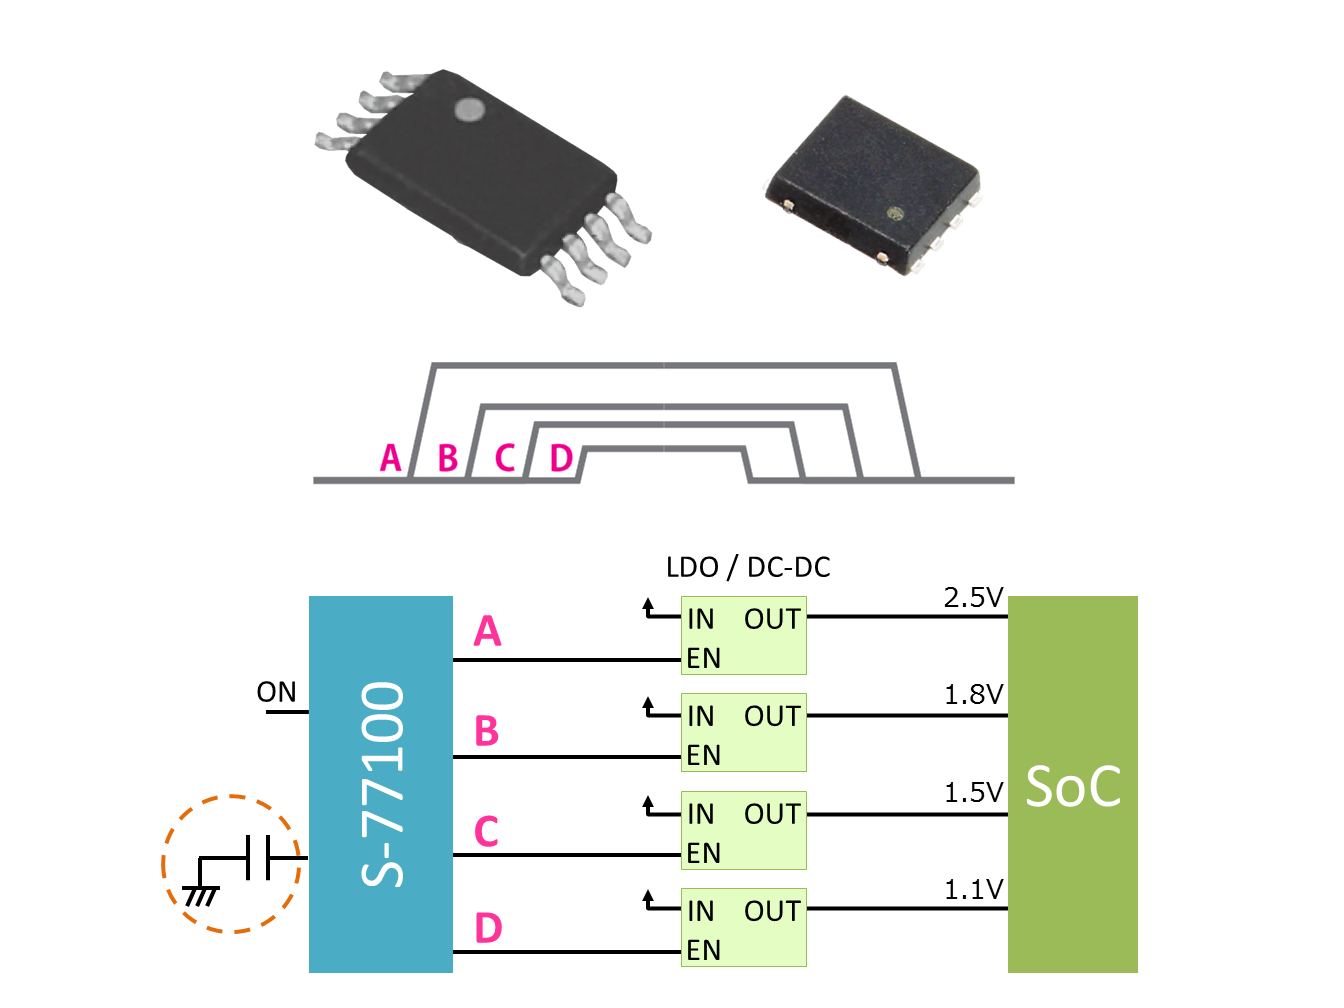 Seiko instruments sii releases new power sequencer ic enabling stable system startup the s 77100 77101 series allows easy control of power supply